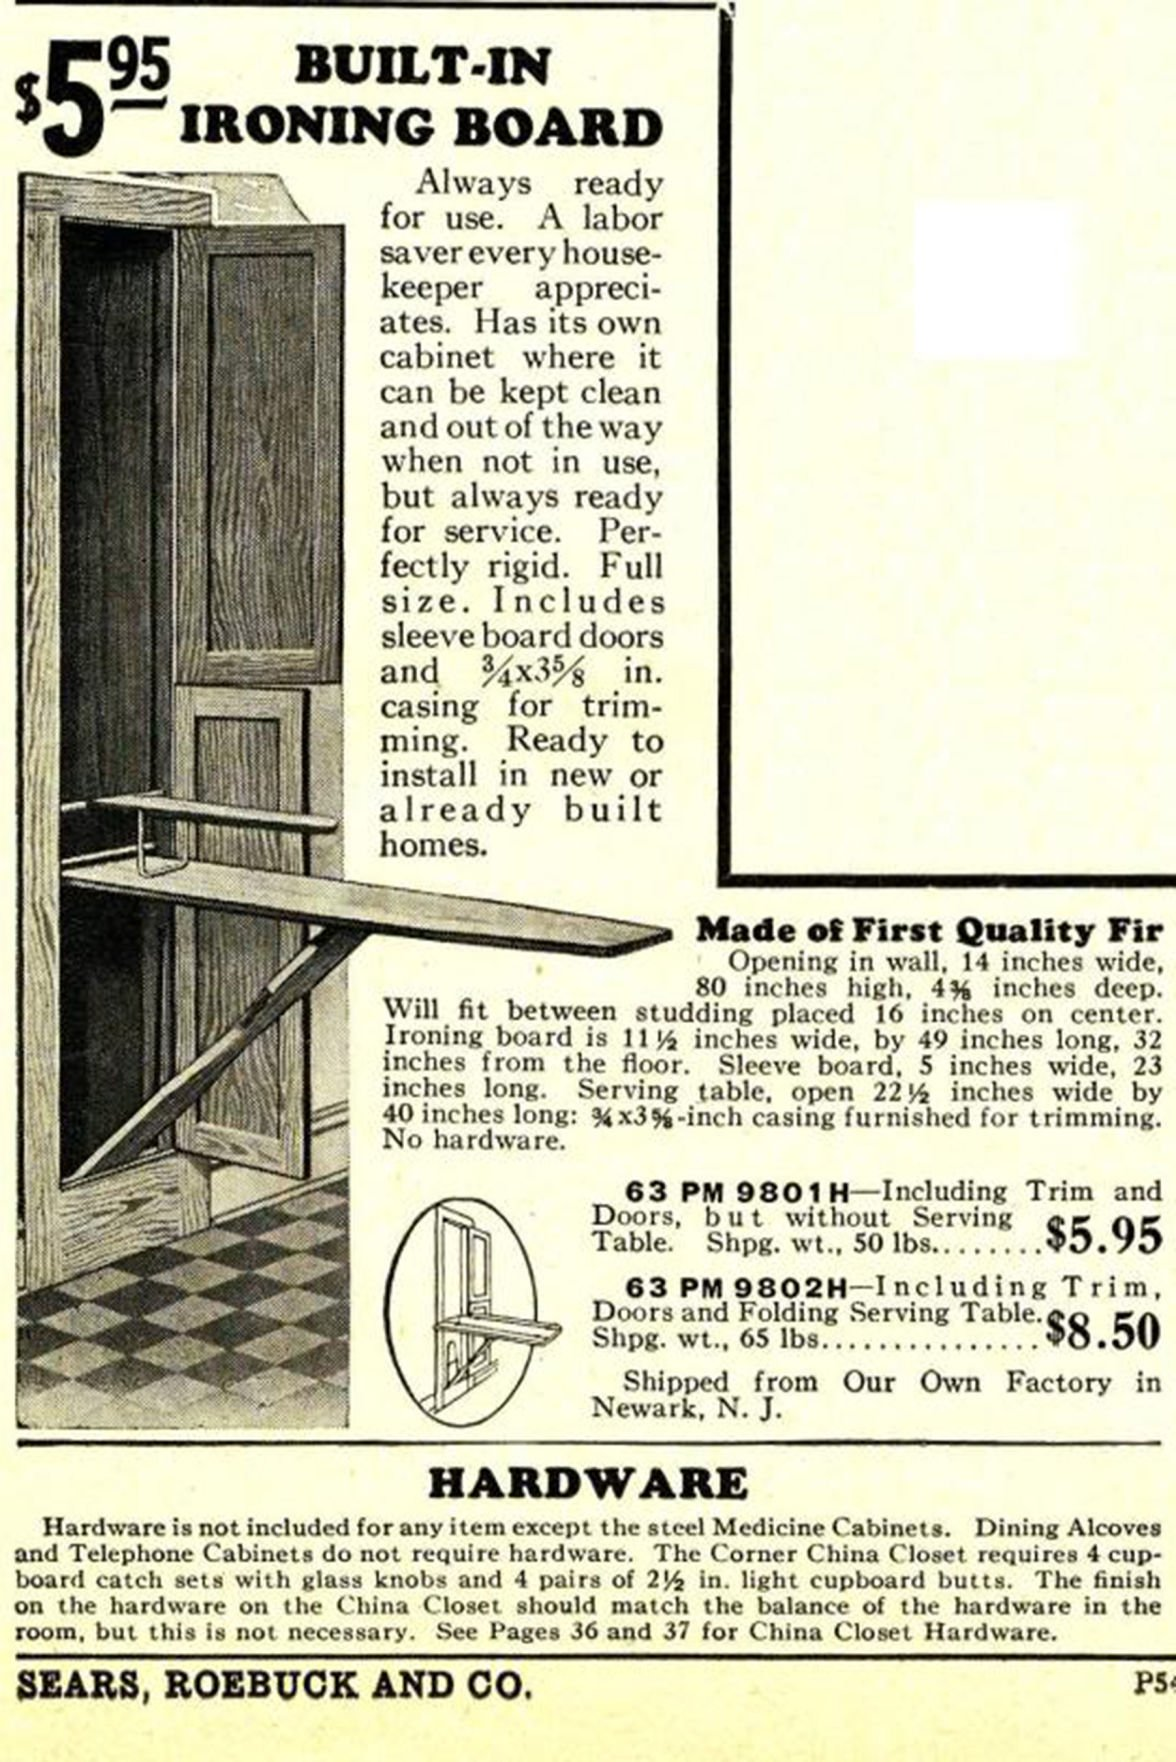 Remember When: Ironing boards